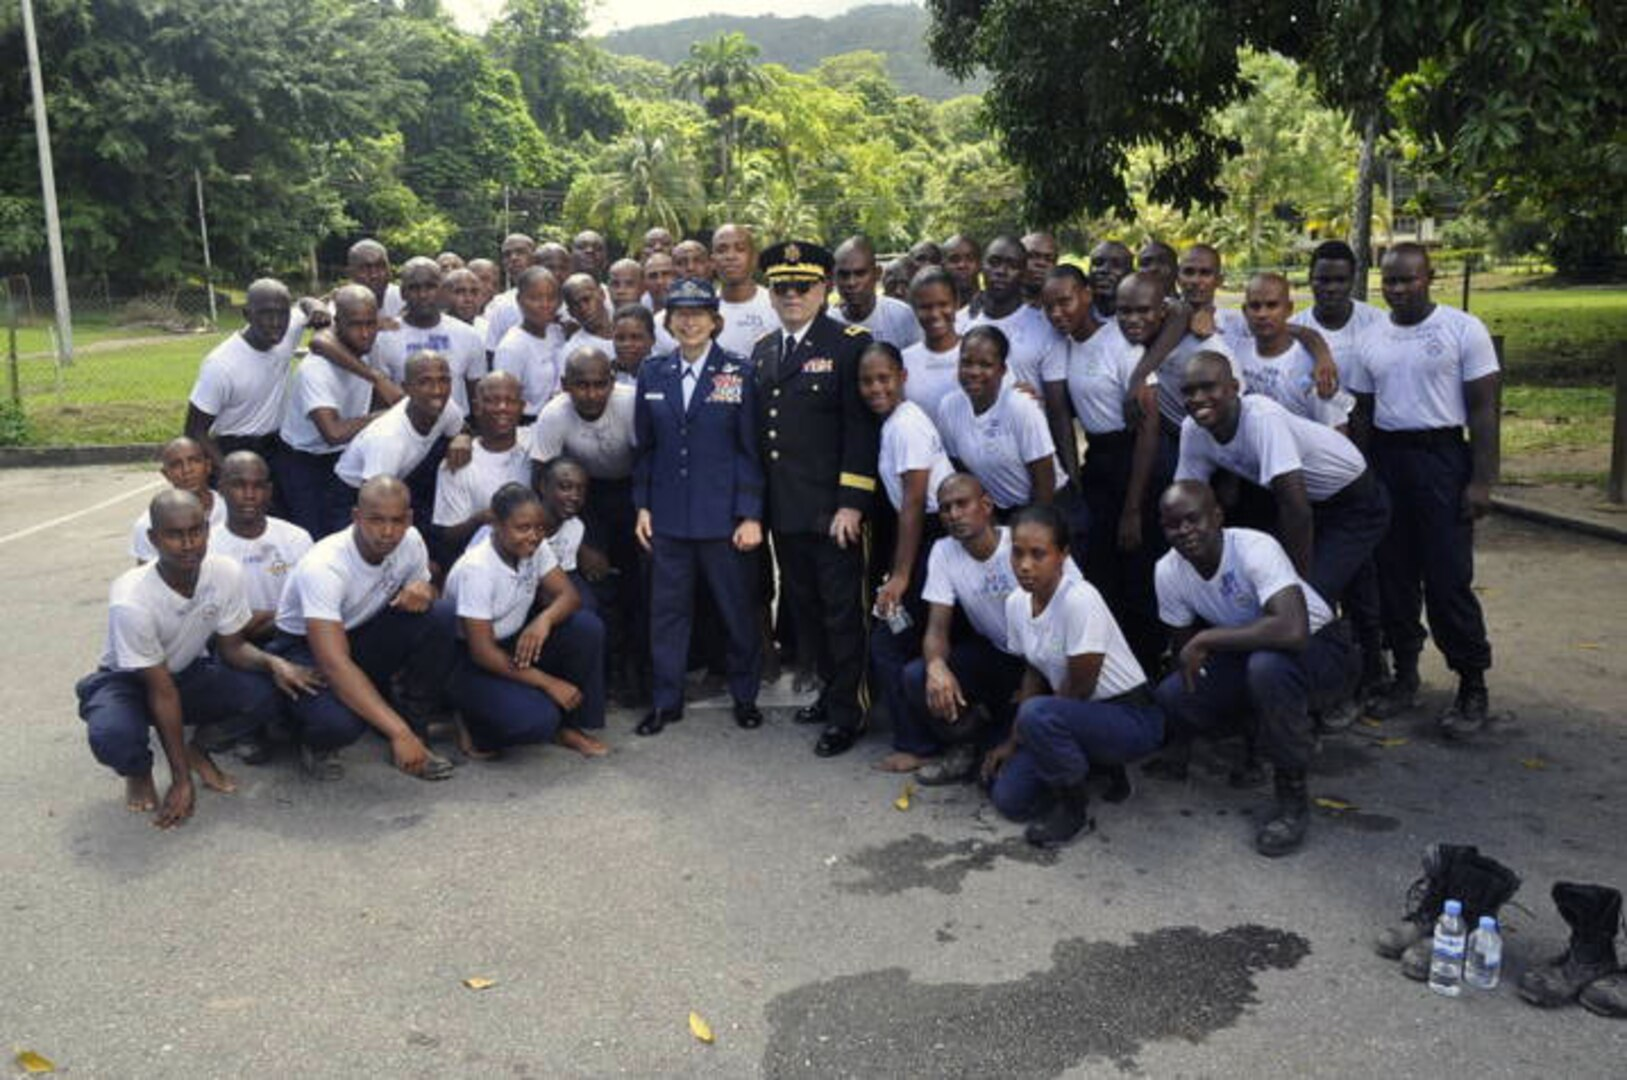 Maj. Gen. Frank Vavala and Brig. Gen. Carol Timmons, Assistant Adjutant General, Air, visit with recruits to the Trinidad and Tobago Air Guard.